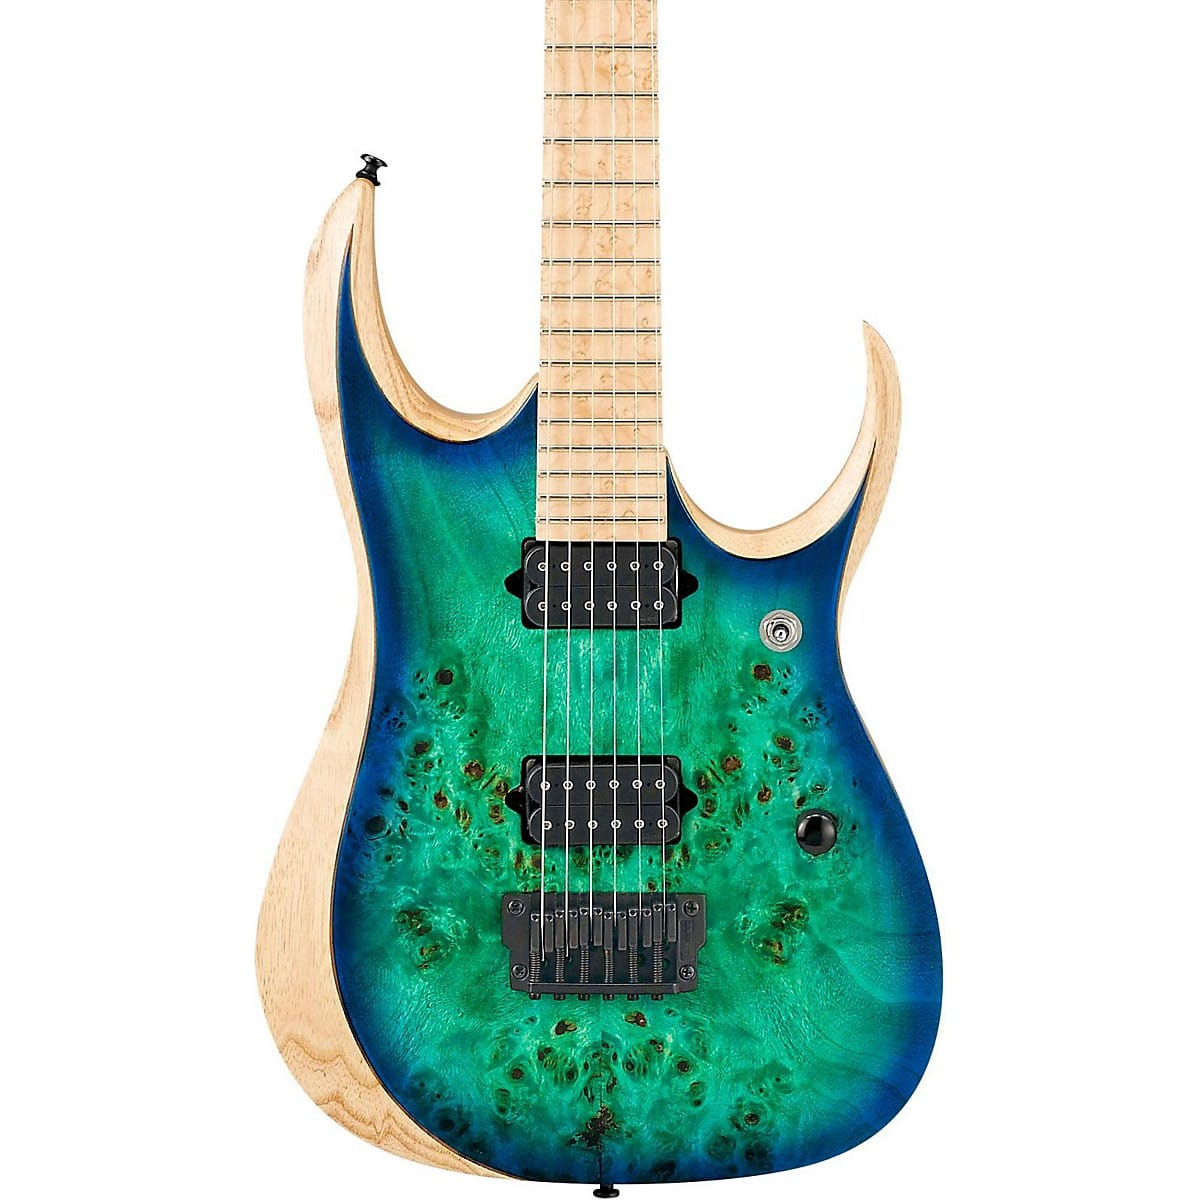 Ibanez Iron Label RGDIX6MPB Electric Guitar - $499 $499.99